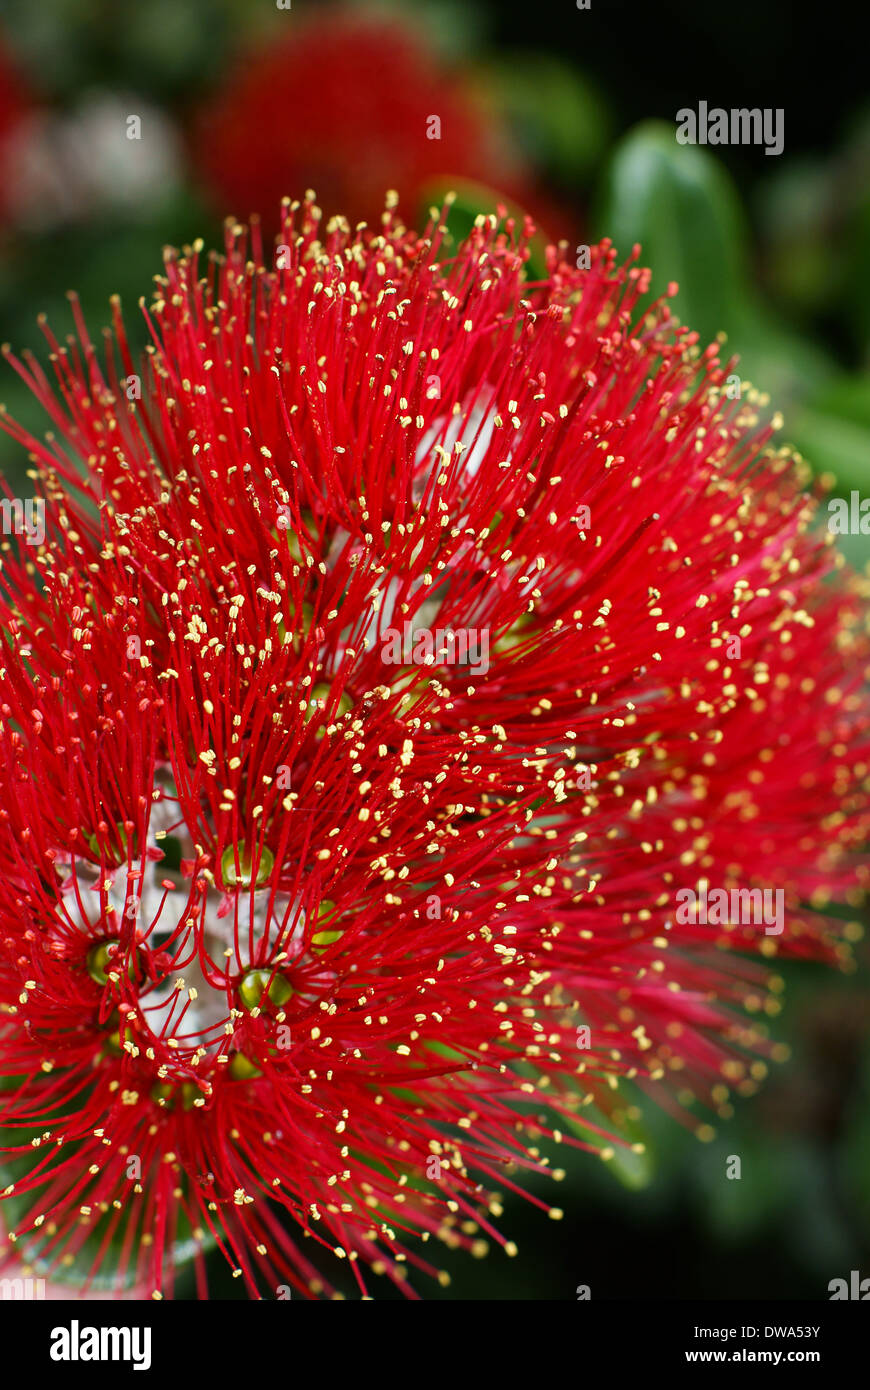 Flowers Of The Pohutukawa Metrosideros Excelsa A Native Tree Of